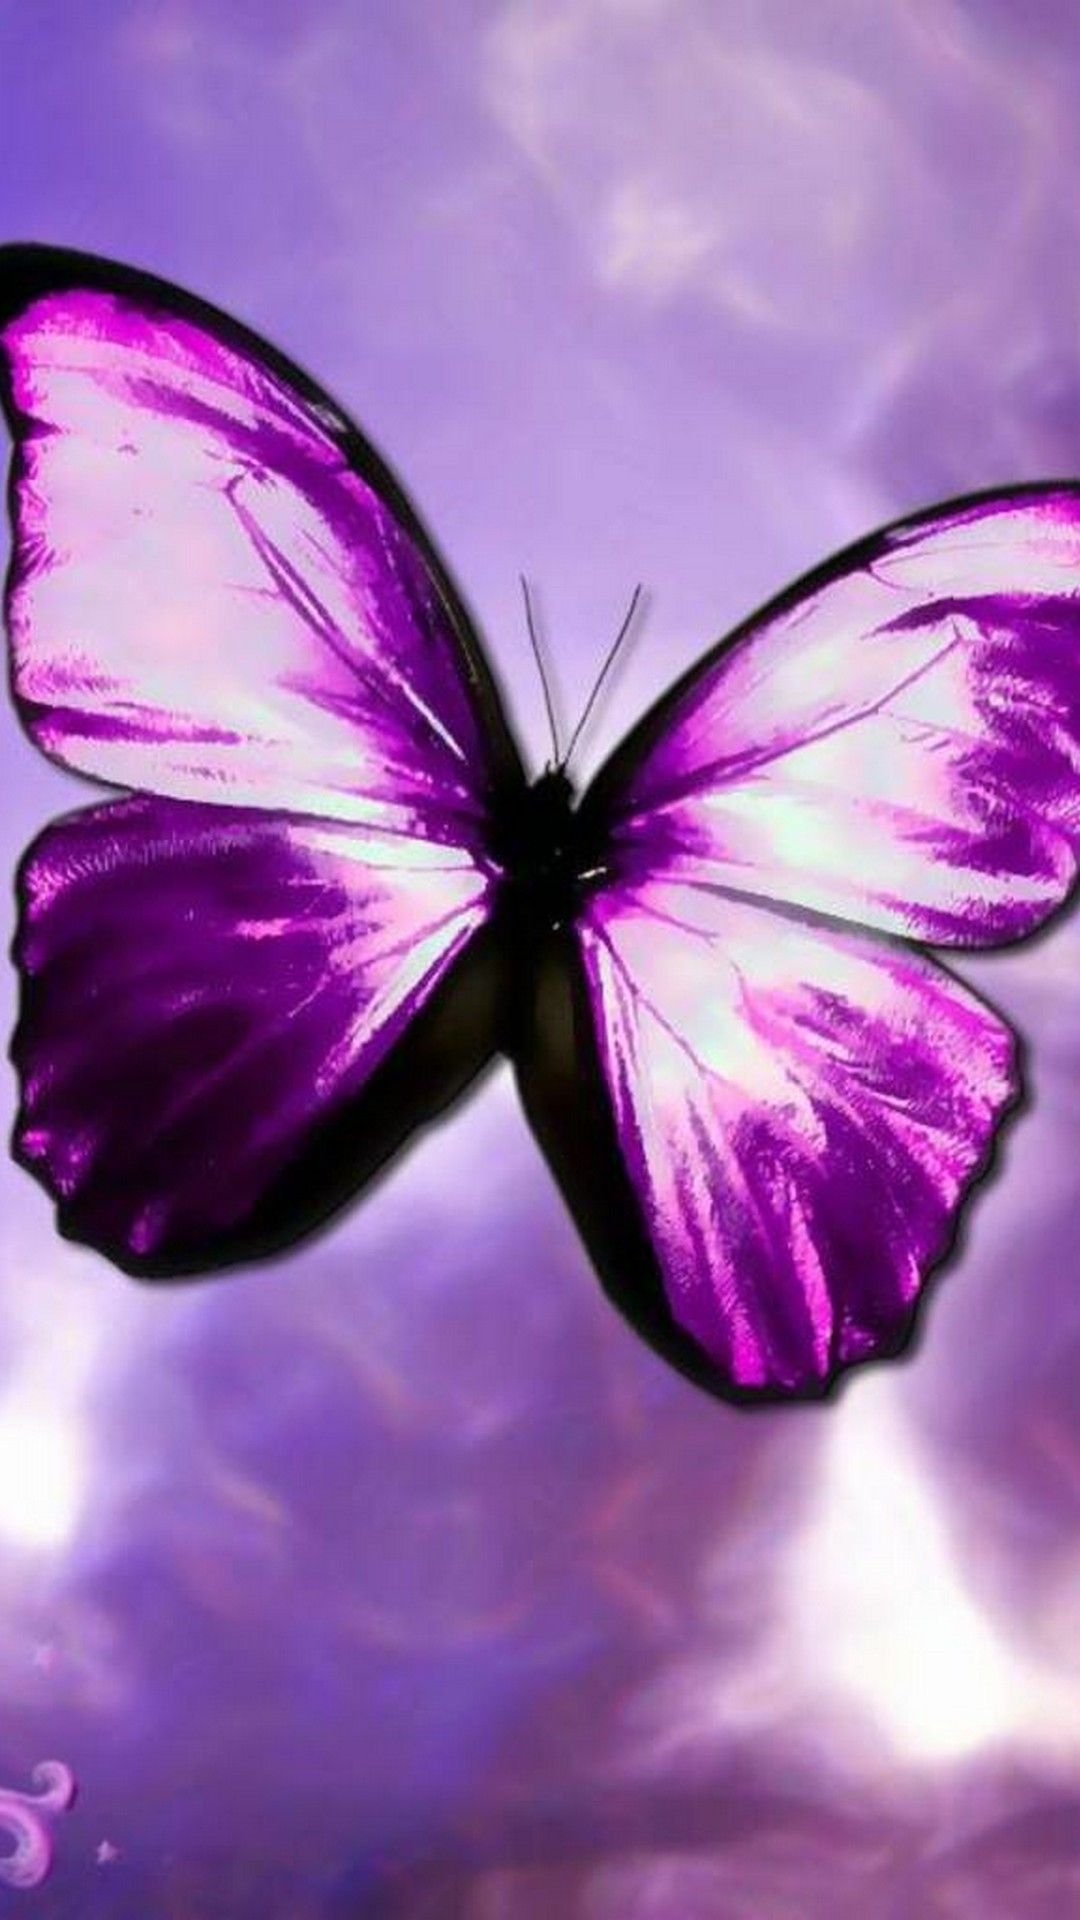 Purple Butterfly Wallpaper For Android Best Mobile Wallpaper Purple Butterfly Wallpaper Butterfly Wallpaper Blue Butterfly Wallpaper